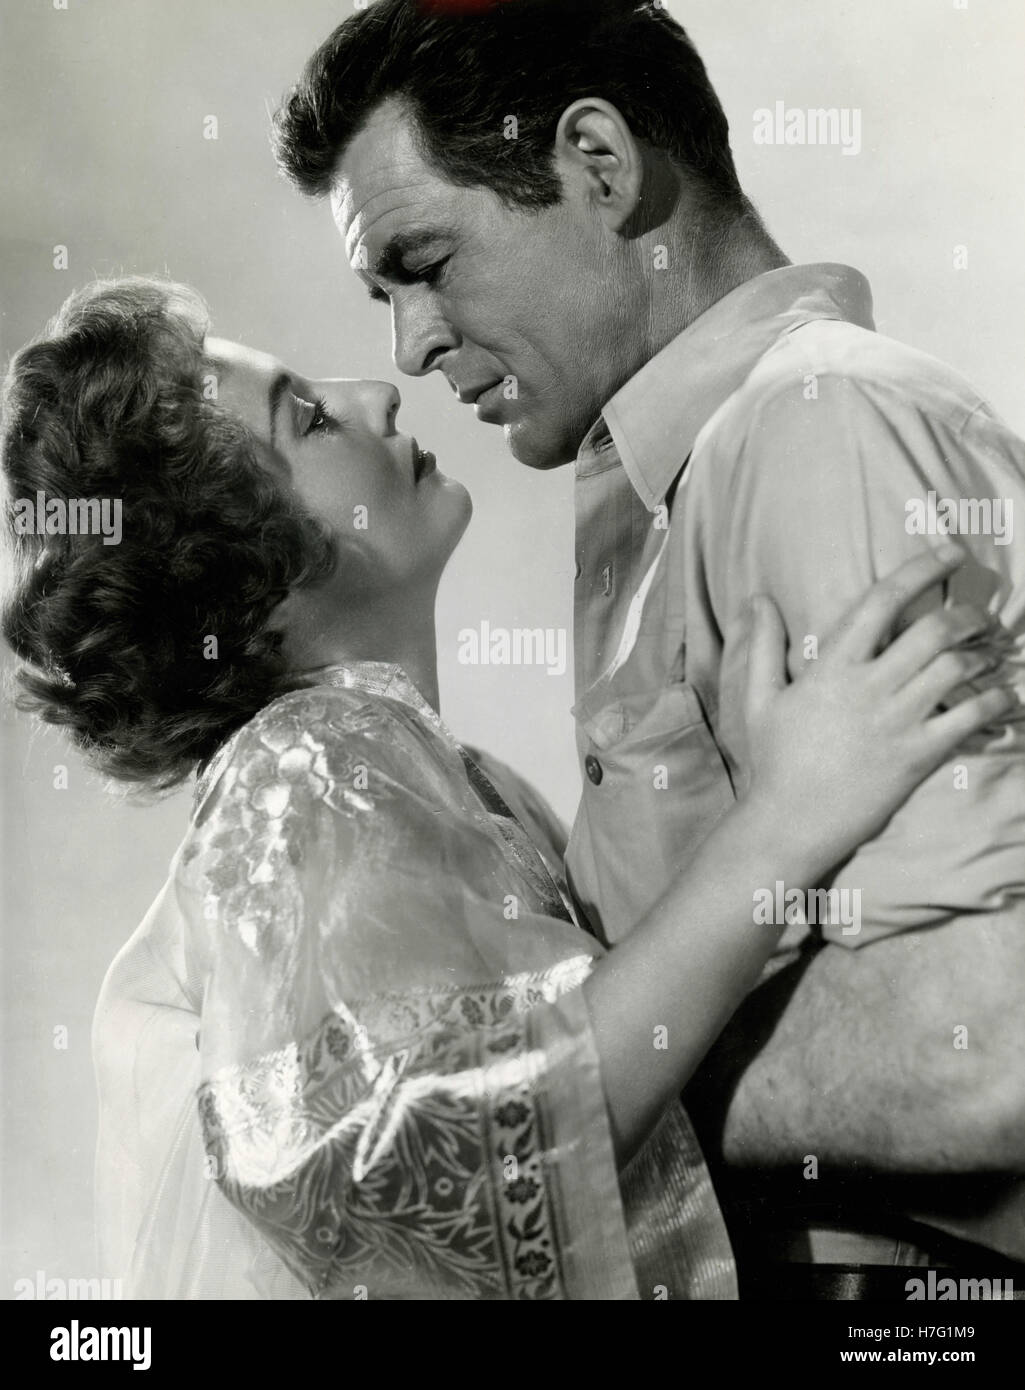 Actors Robert Ryan and Barbara Stanwyck in the movie Escape to Burma, USA 1955 - Stock Image